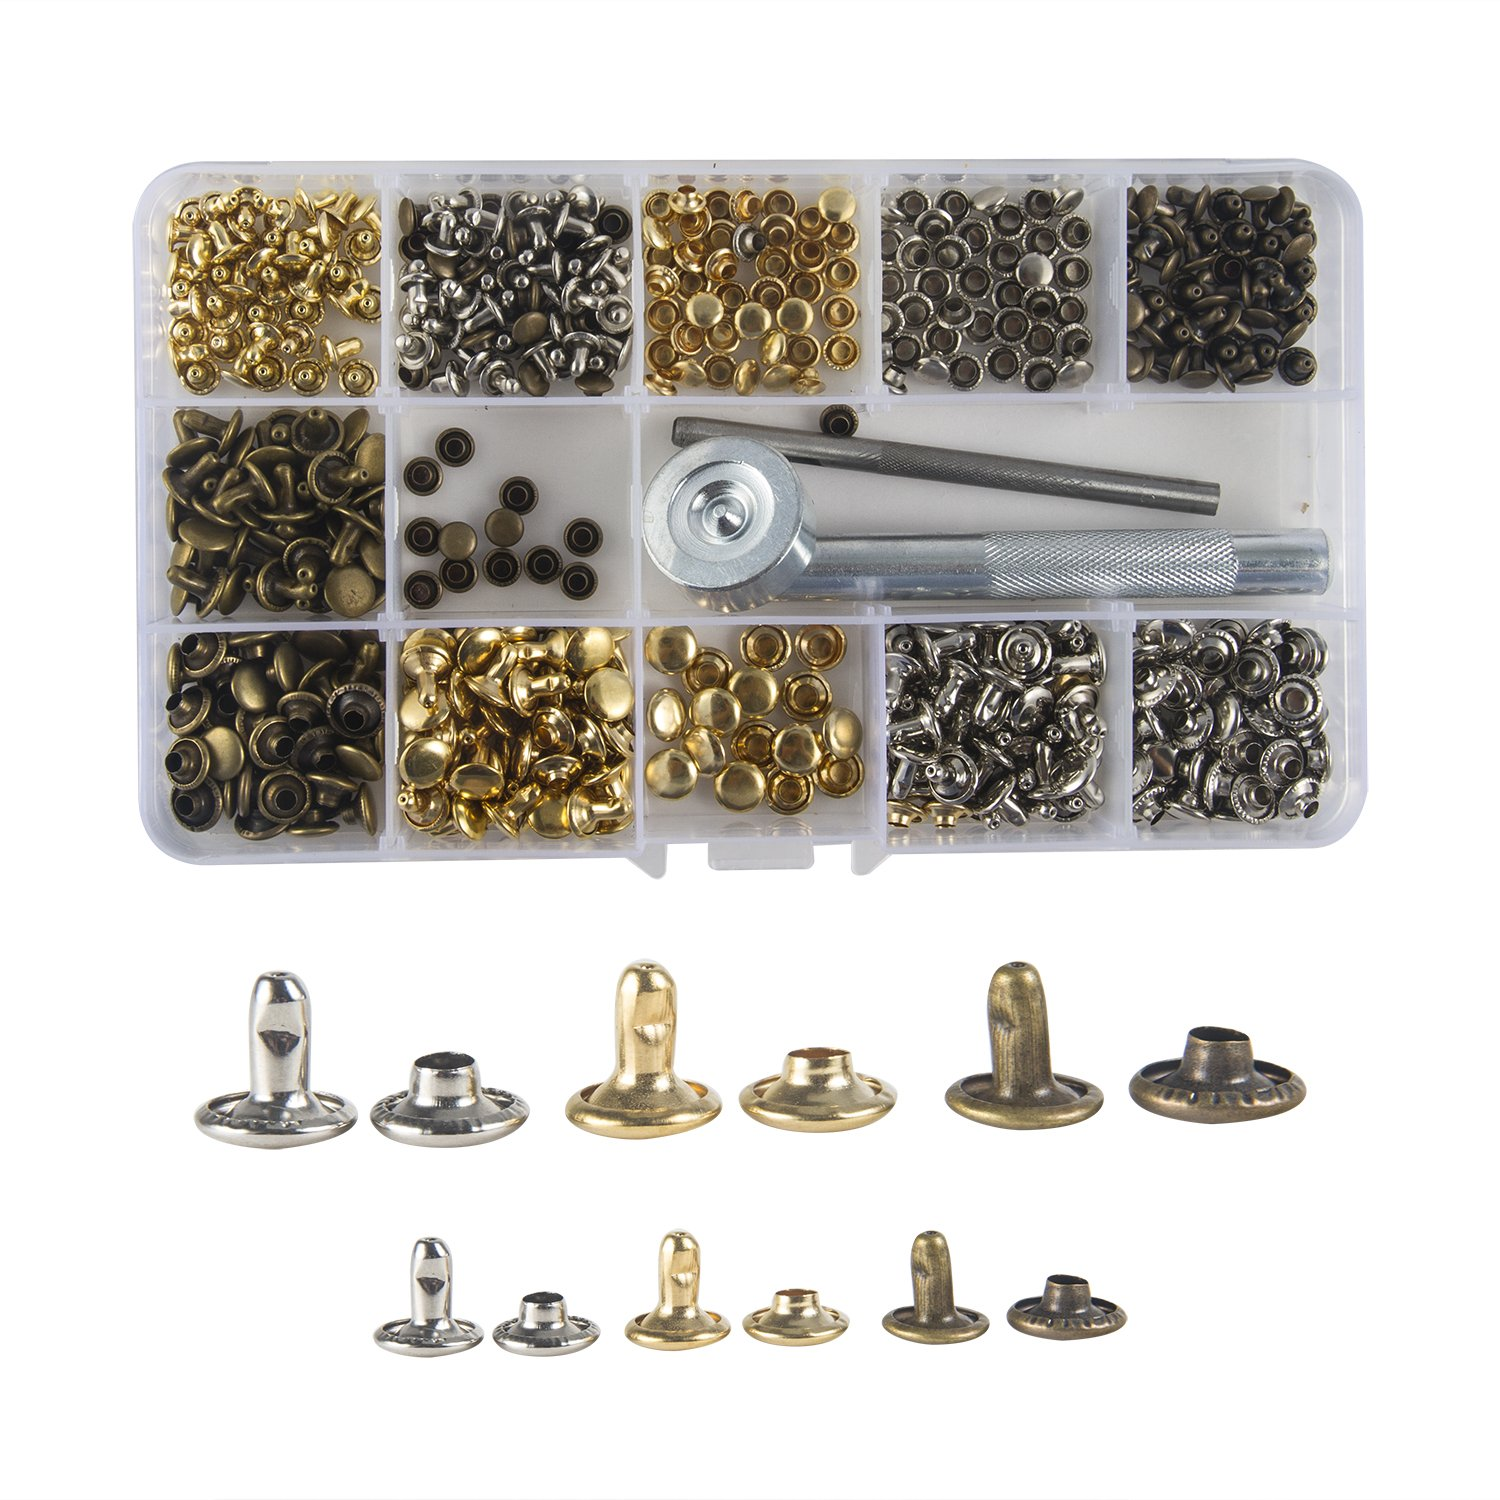 Waloden 240 Set Leather Rivets 3 Sizes Single Cap Rivets Metal Leather Rivets with 3 Pieces Tool Kits for Leather Craft Repairs Decoration LML